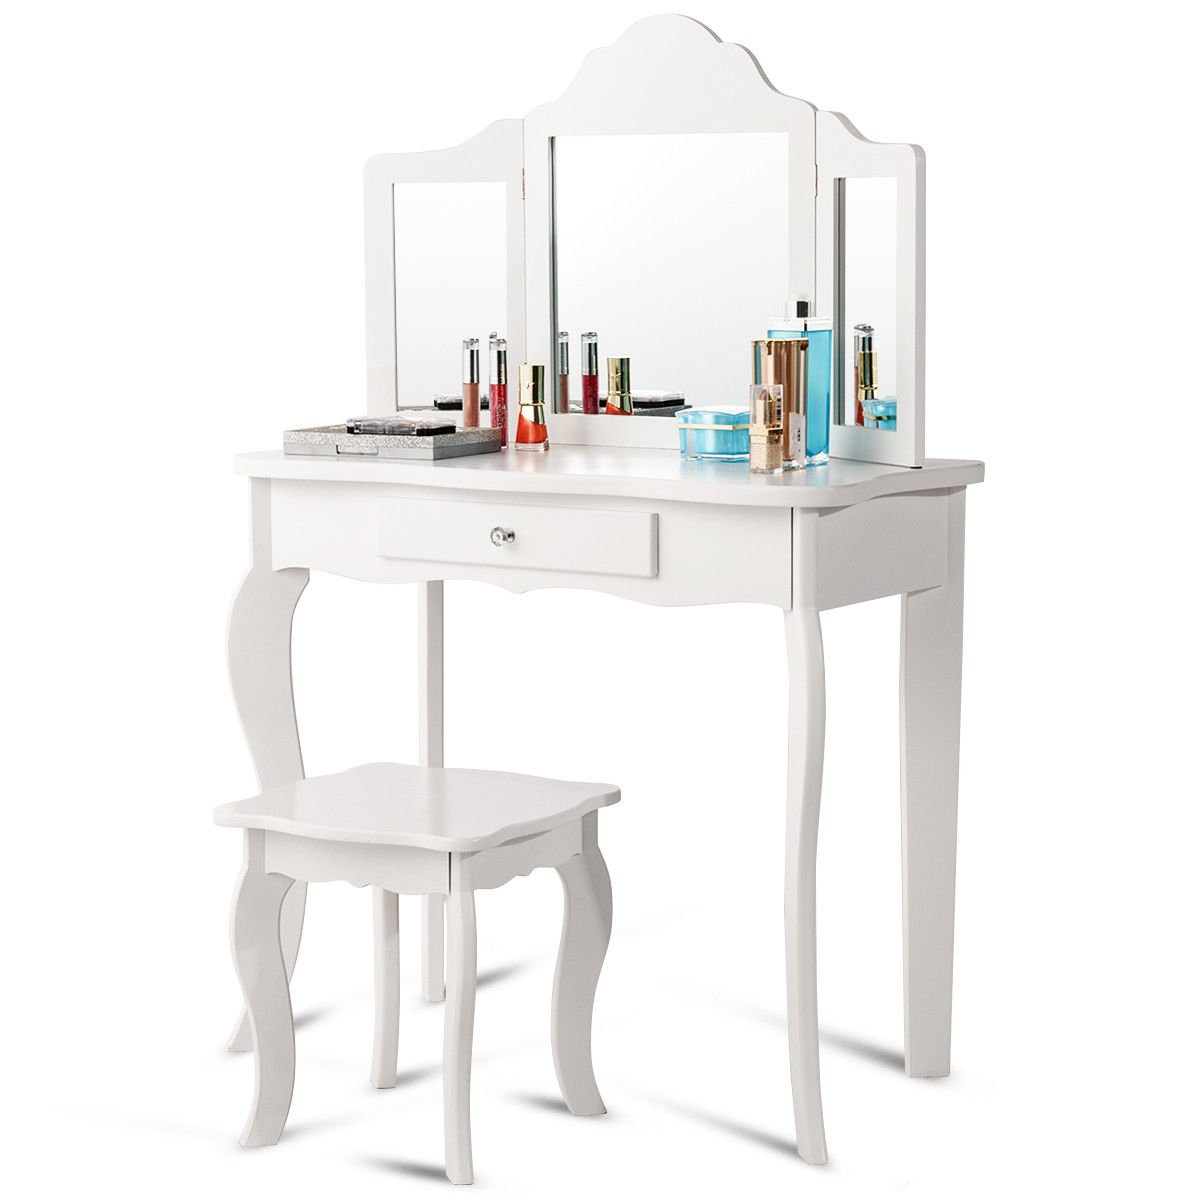 Costzon Kids Wooden Vanity Table & Stool Set, Princess Makeup Dressing Table with Two 180° Folding Mirror, White